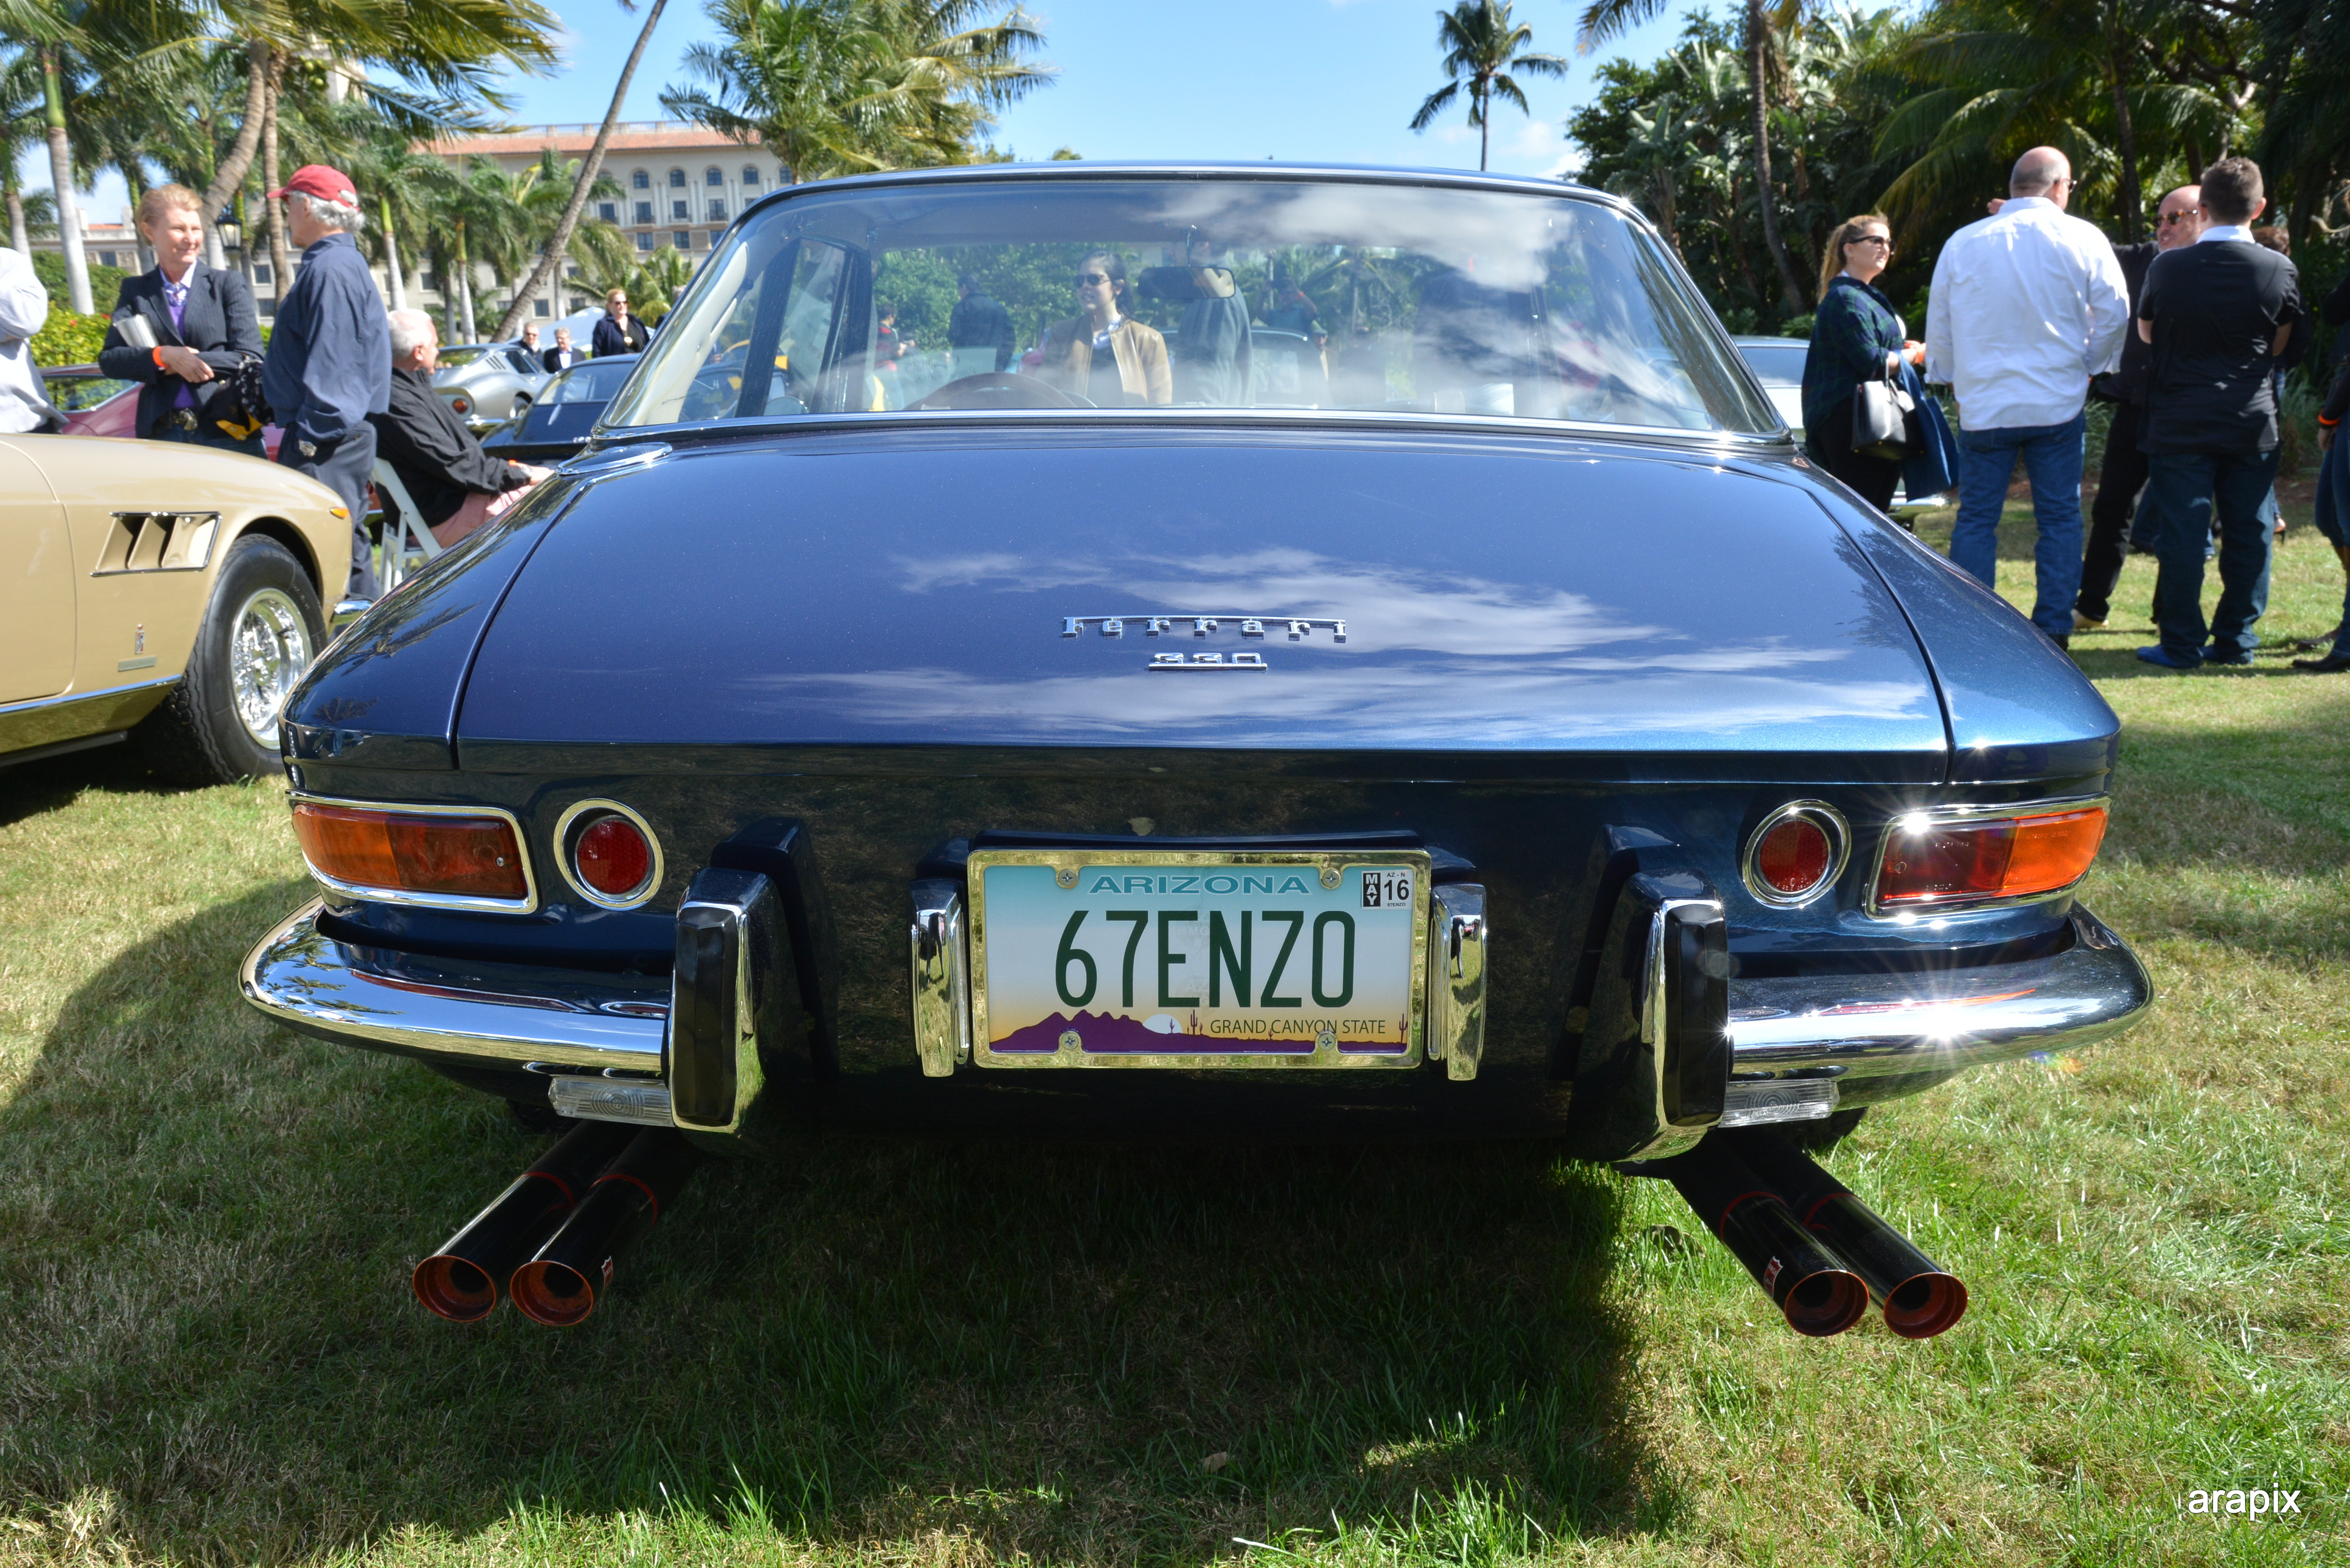 blue ferrari 330 - vanity license plates